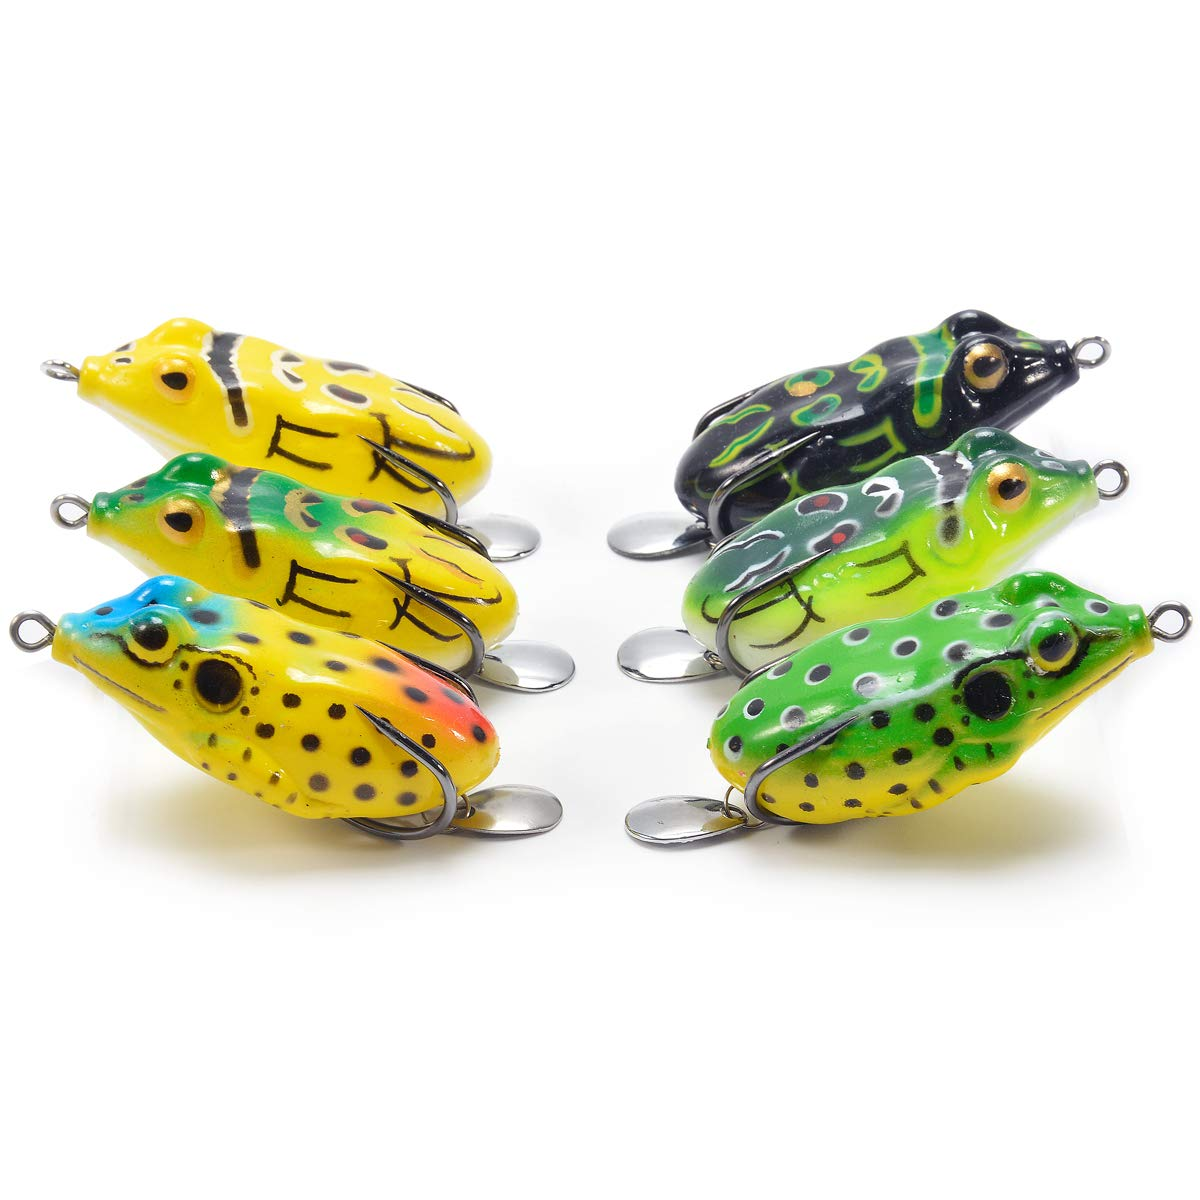 Supertrip Topwater Frog Crankbait Tackle Crank Bait Bass Soft Swimbait Lures Crankbaits Baits Hard Bait Fishing Lures(Multicolors) (6pcs with Sequins) by Supertrip